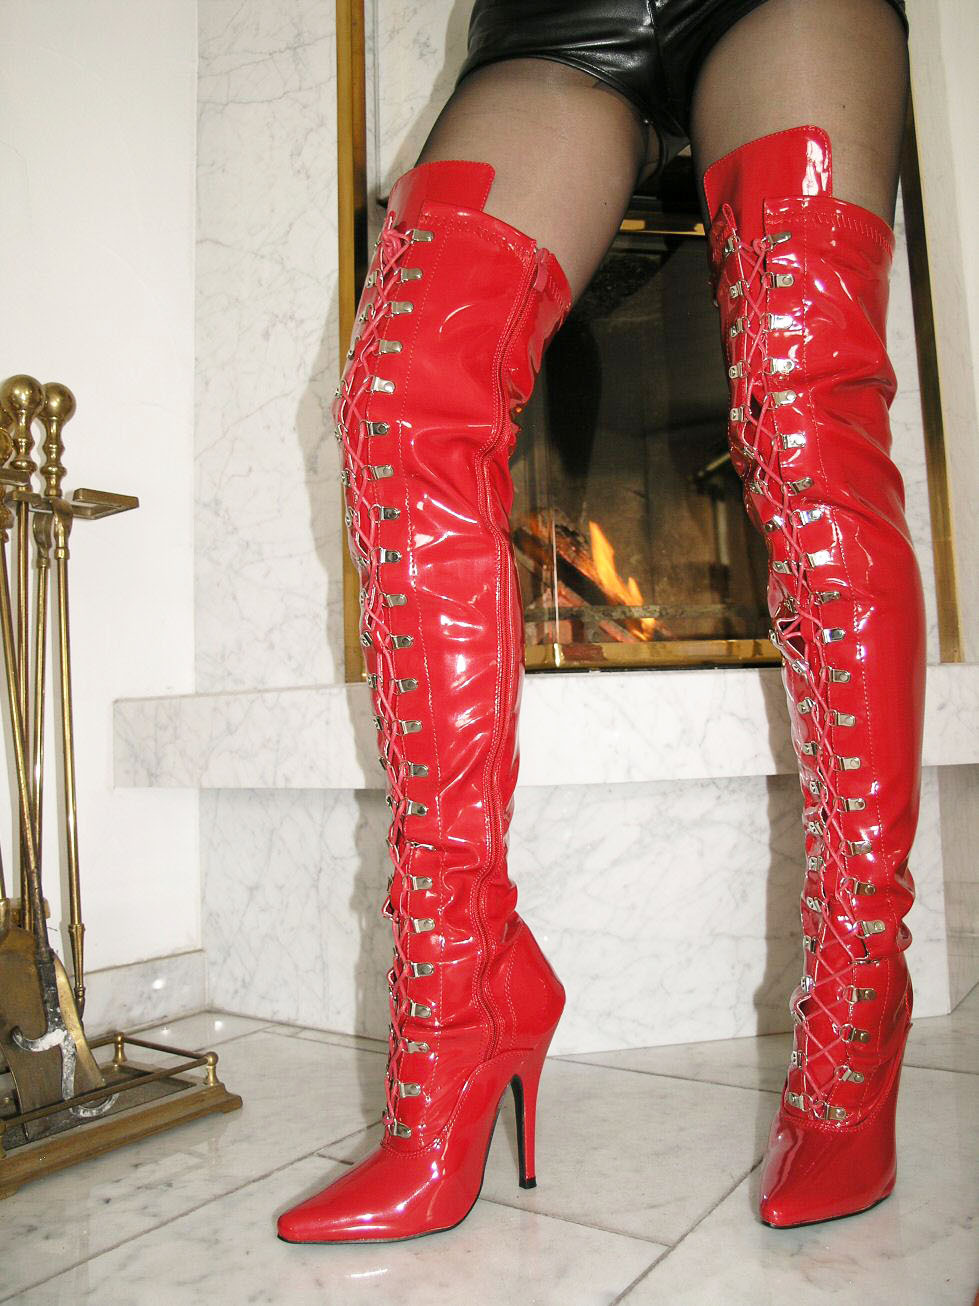 Thigh High Boots Size 13 - Boot Hto